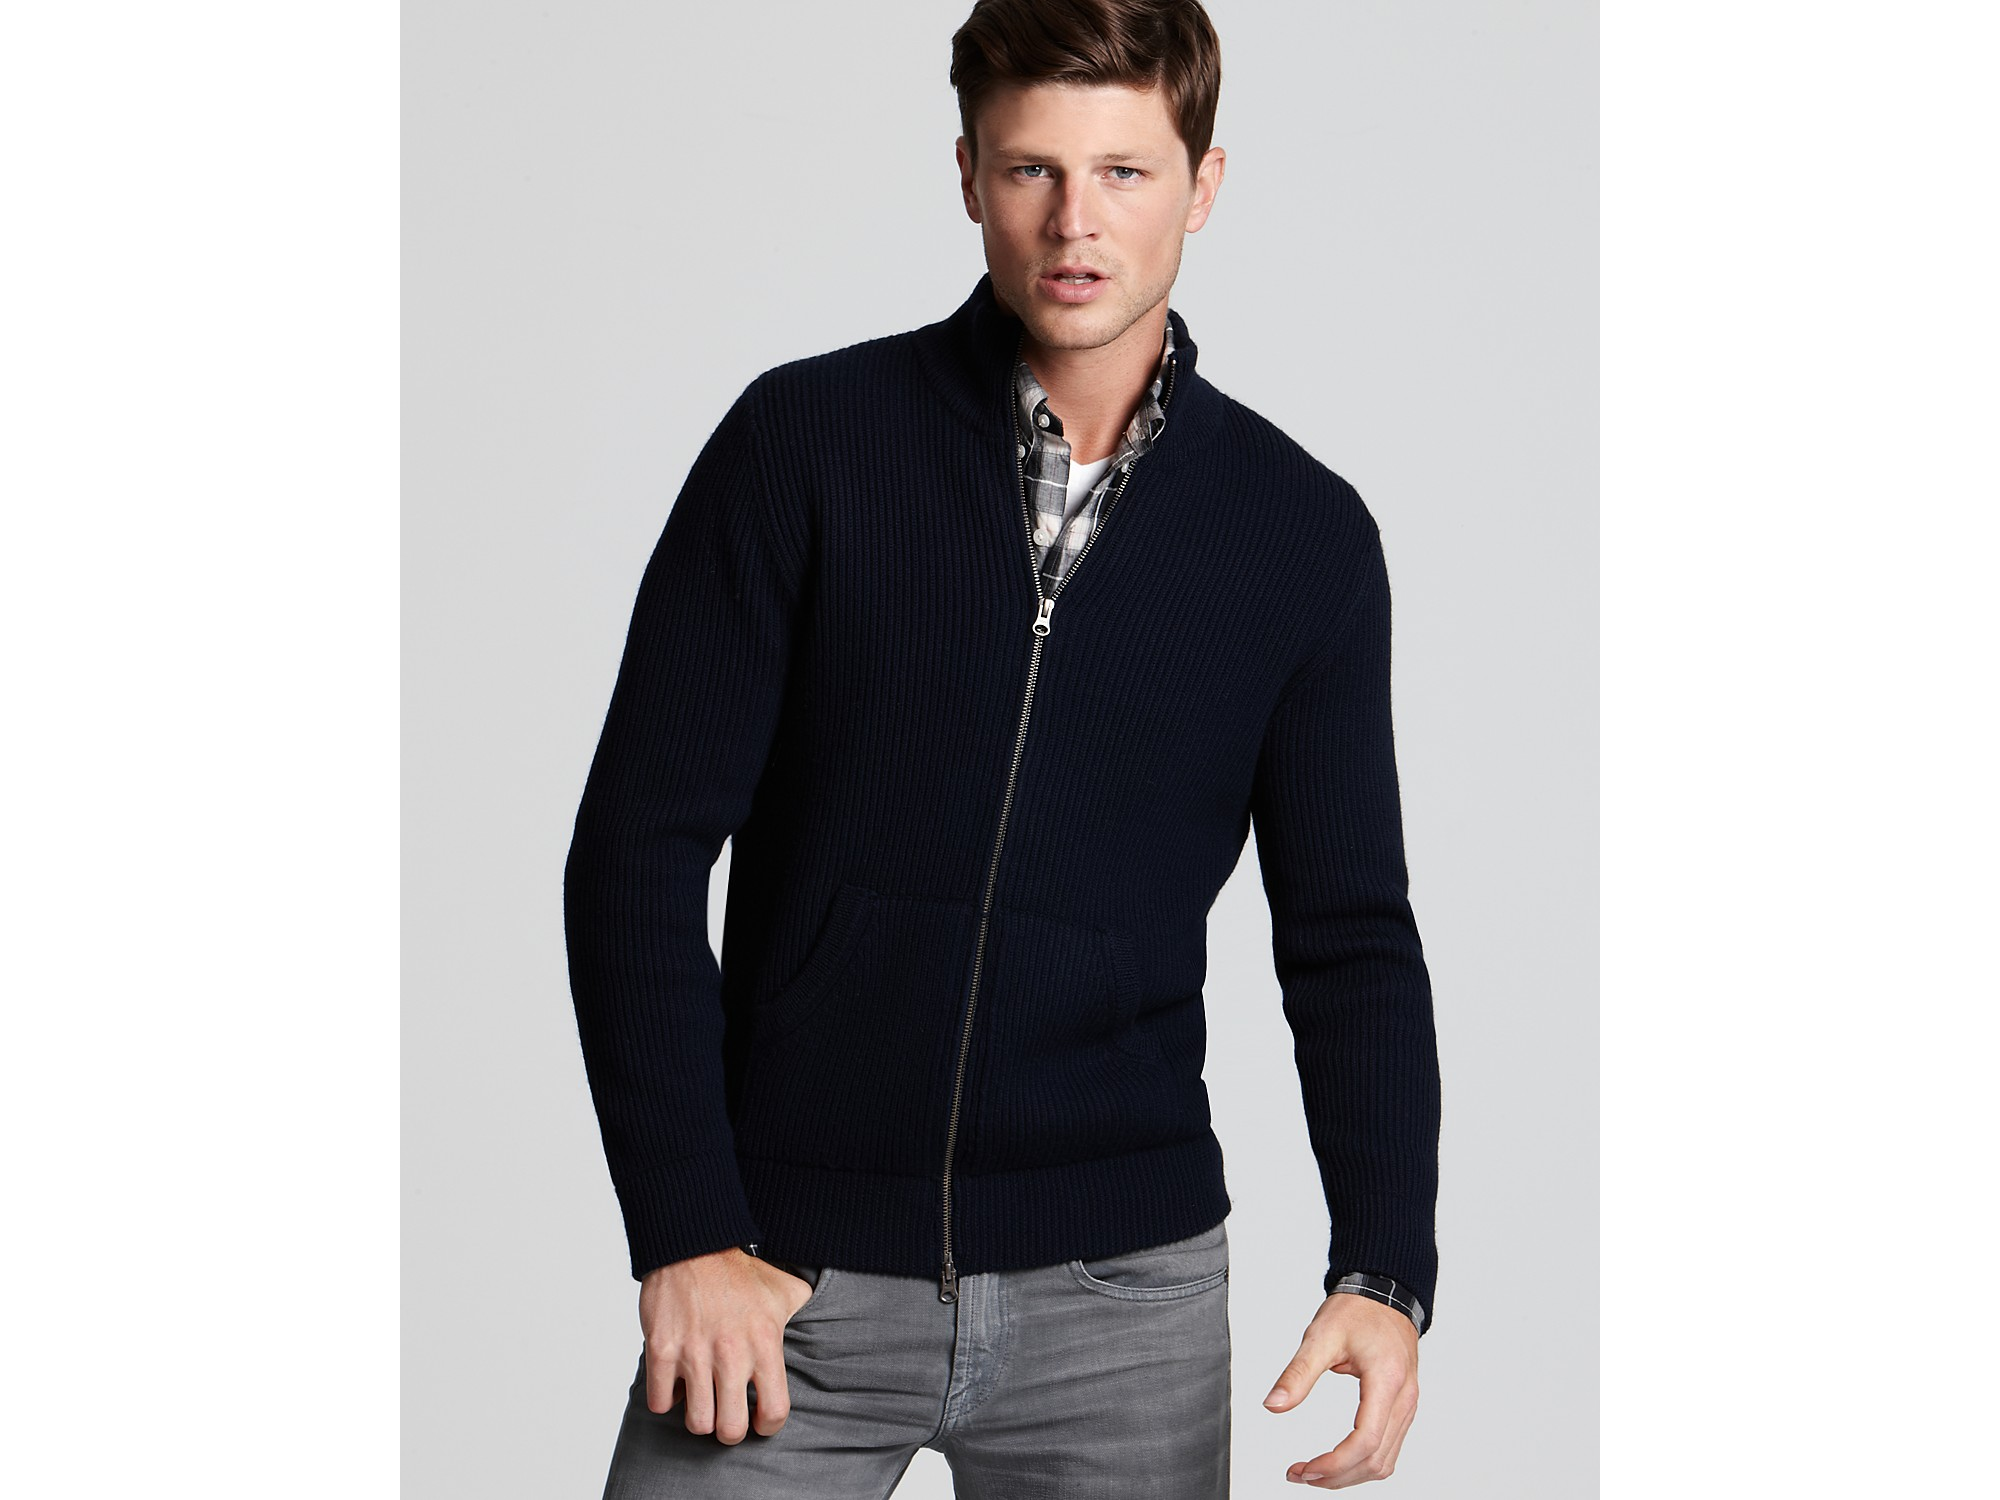 Shop a great selection of Zip-Up Sweaters for Men at Nordstrom Rack. Find designer Zip-Up Sweaters for Men up to 70% off and get free shipping on orders over $